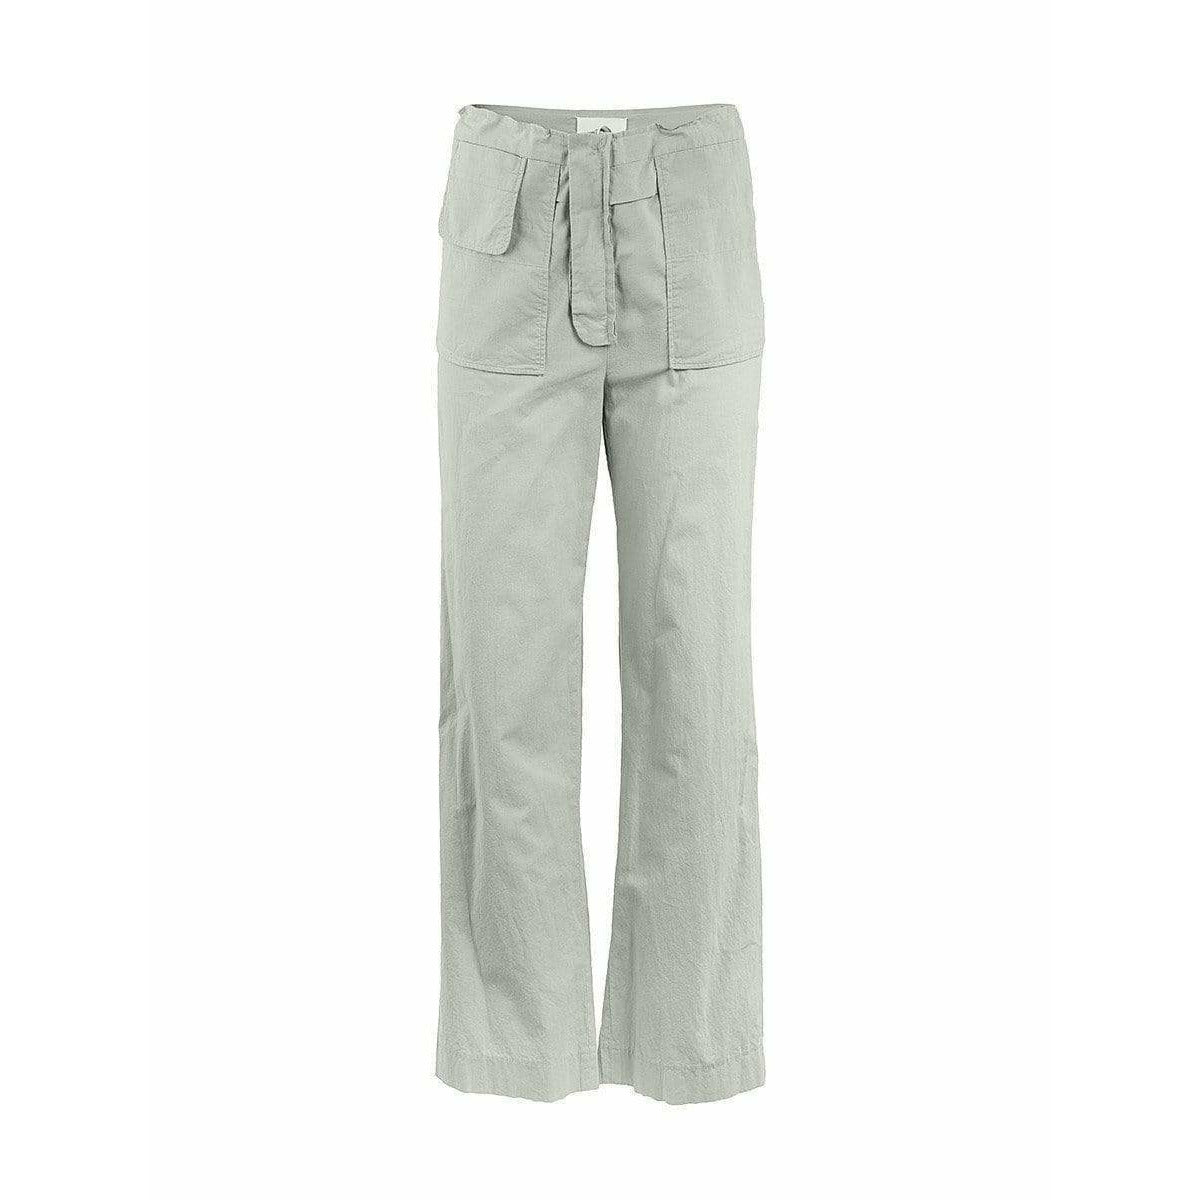 Maison Martin Margiela Womens Pants 40 / Grey Straight Leg Trousers